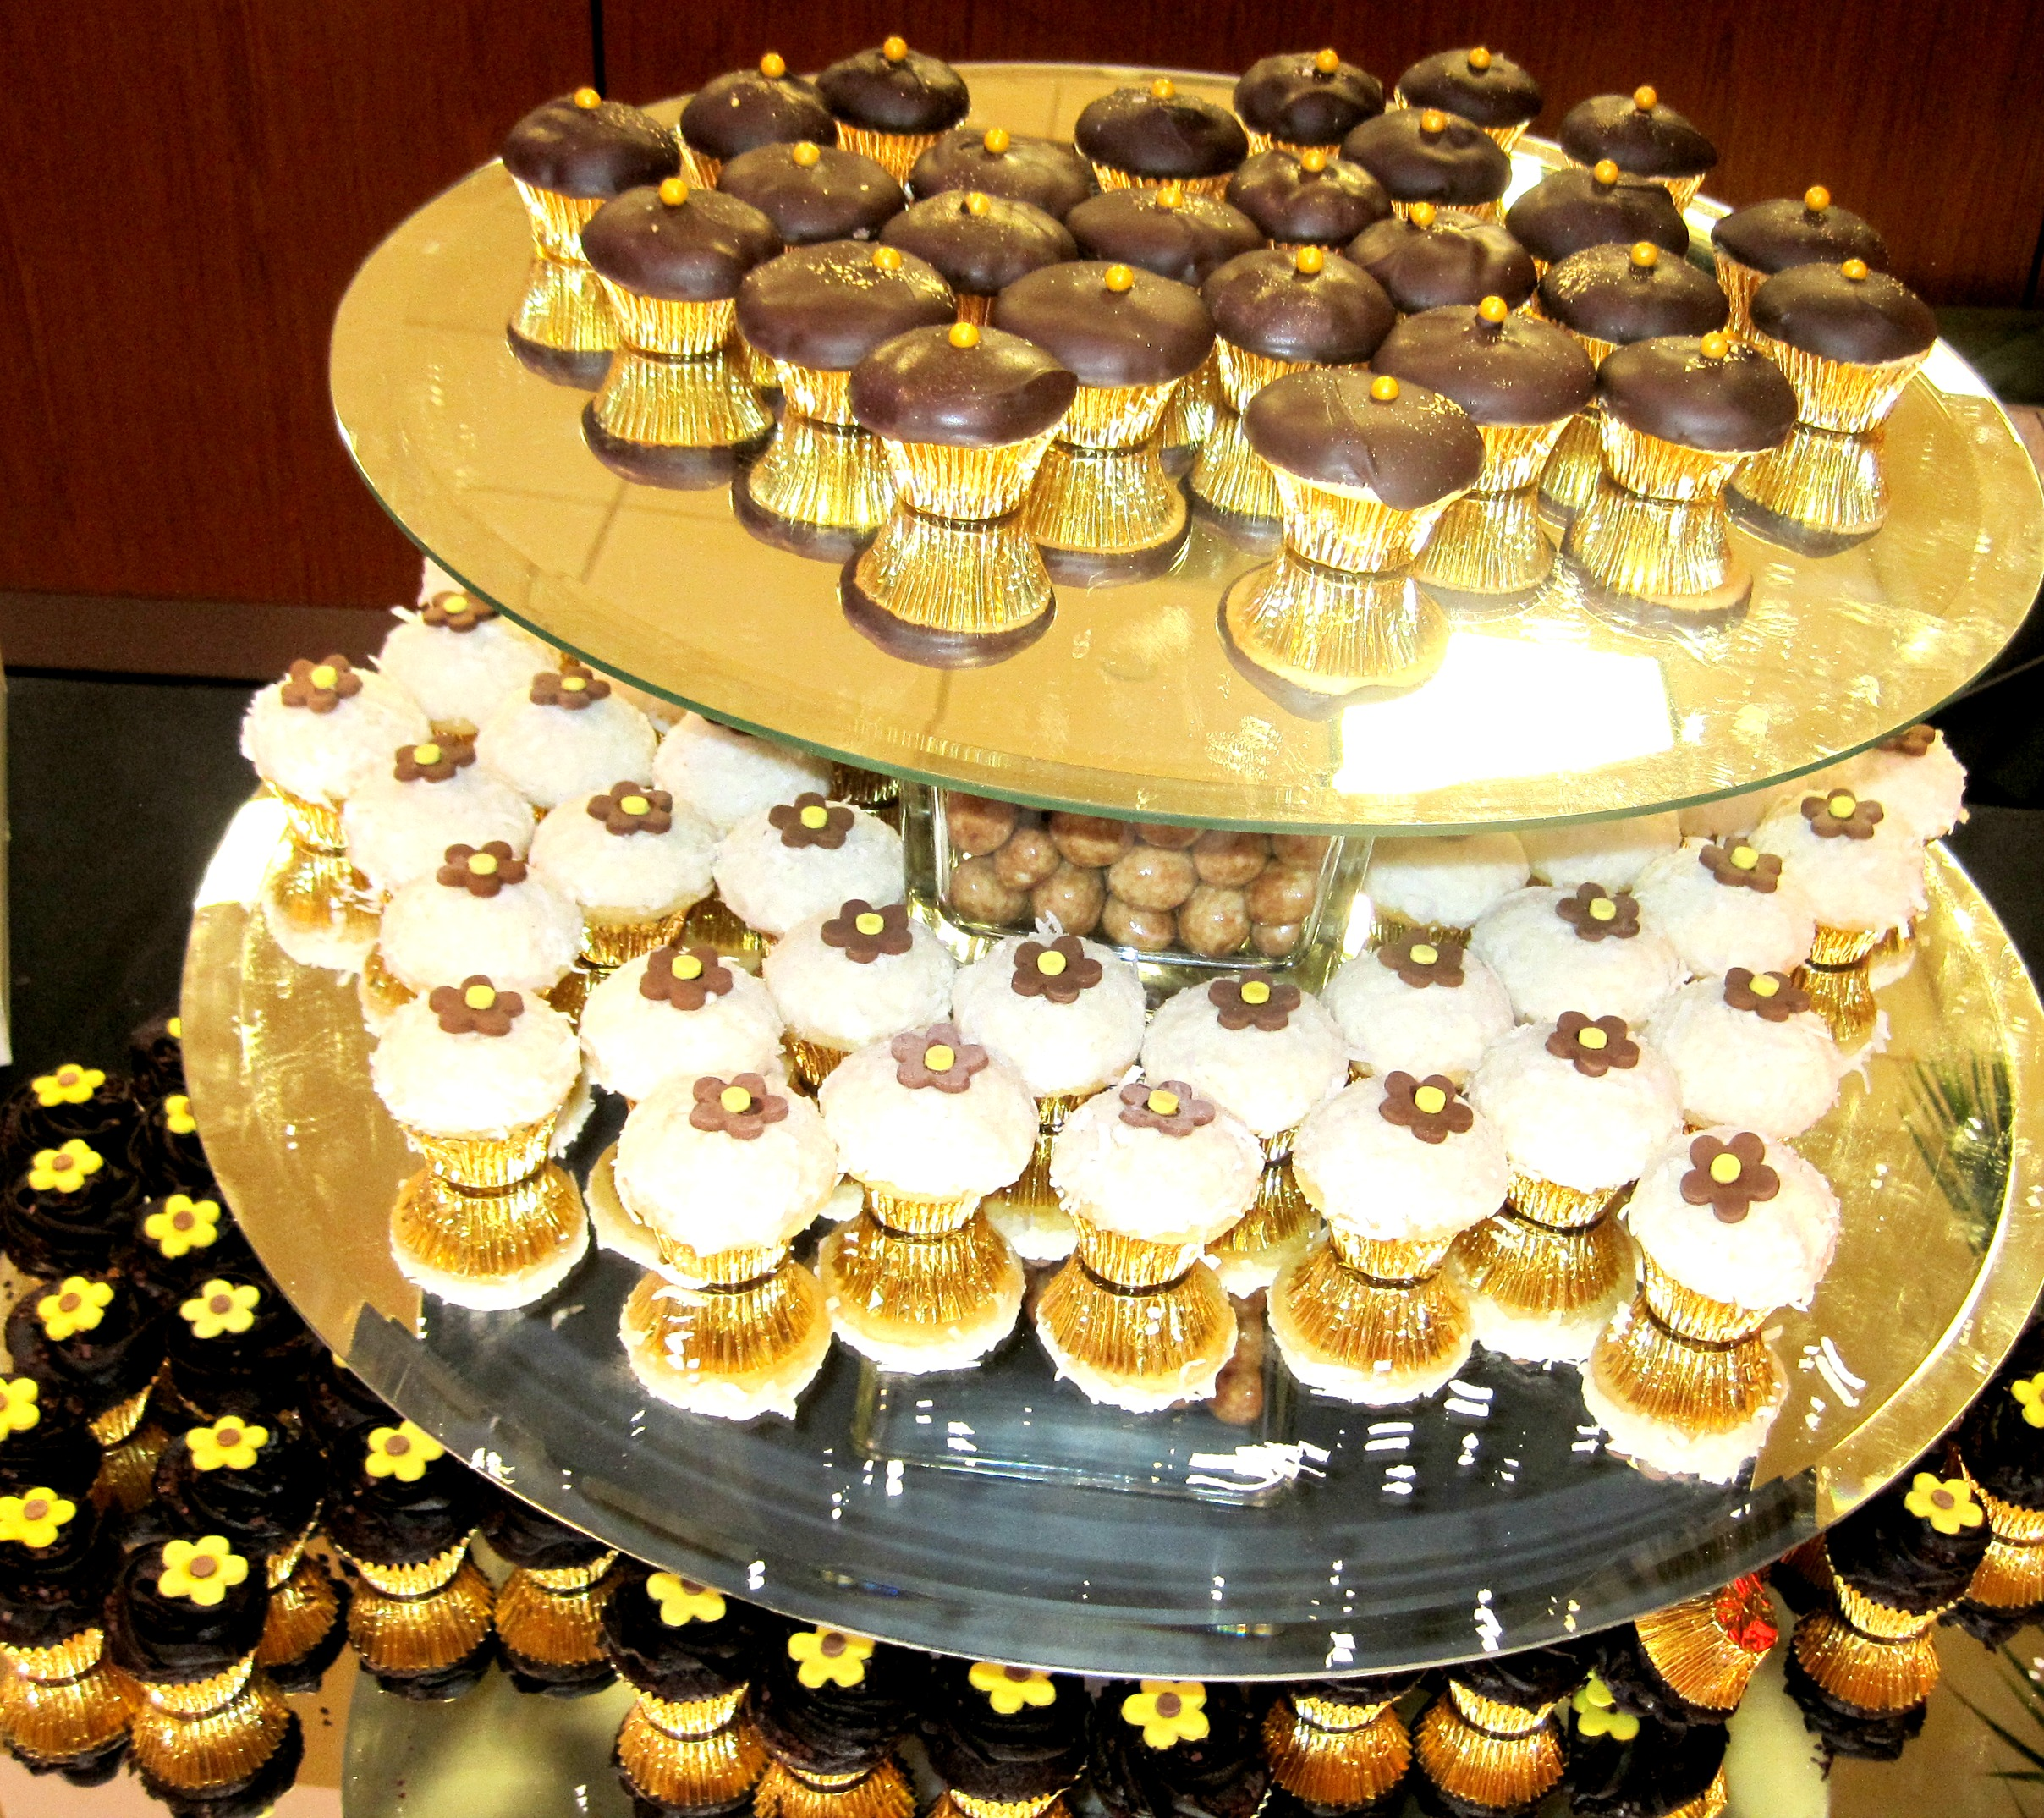 OCrestaurantweek_cupcakes